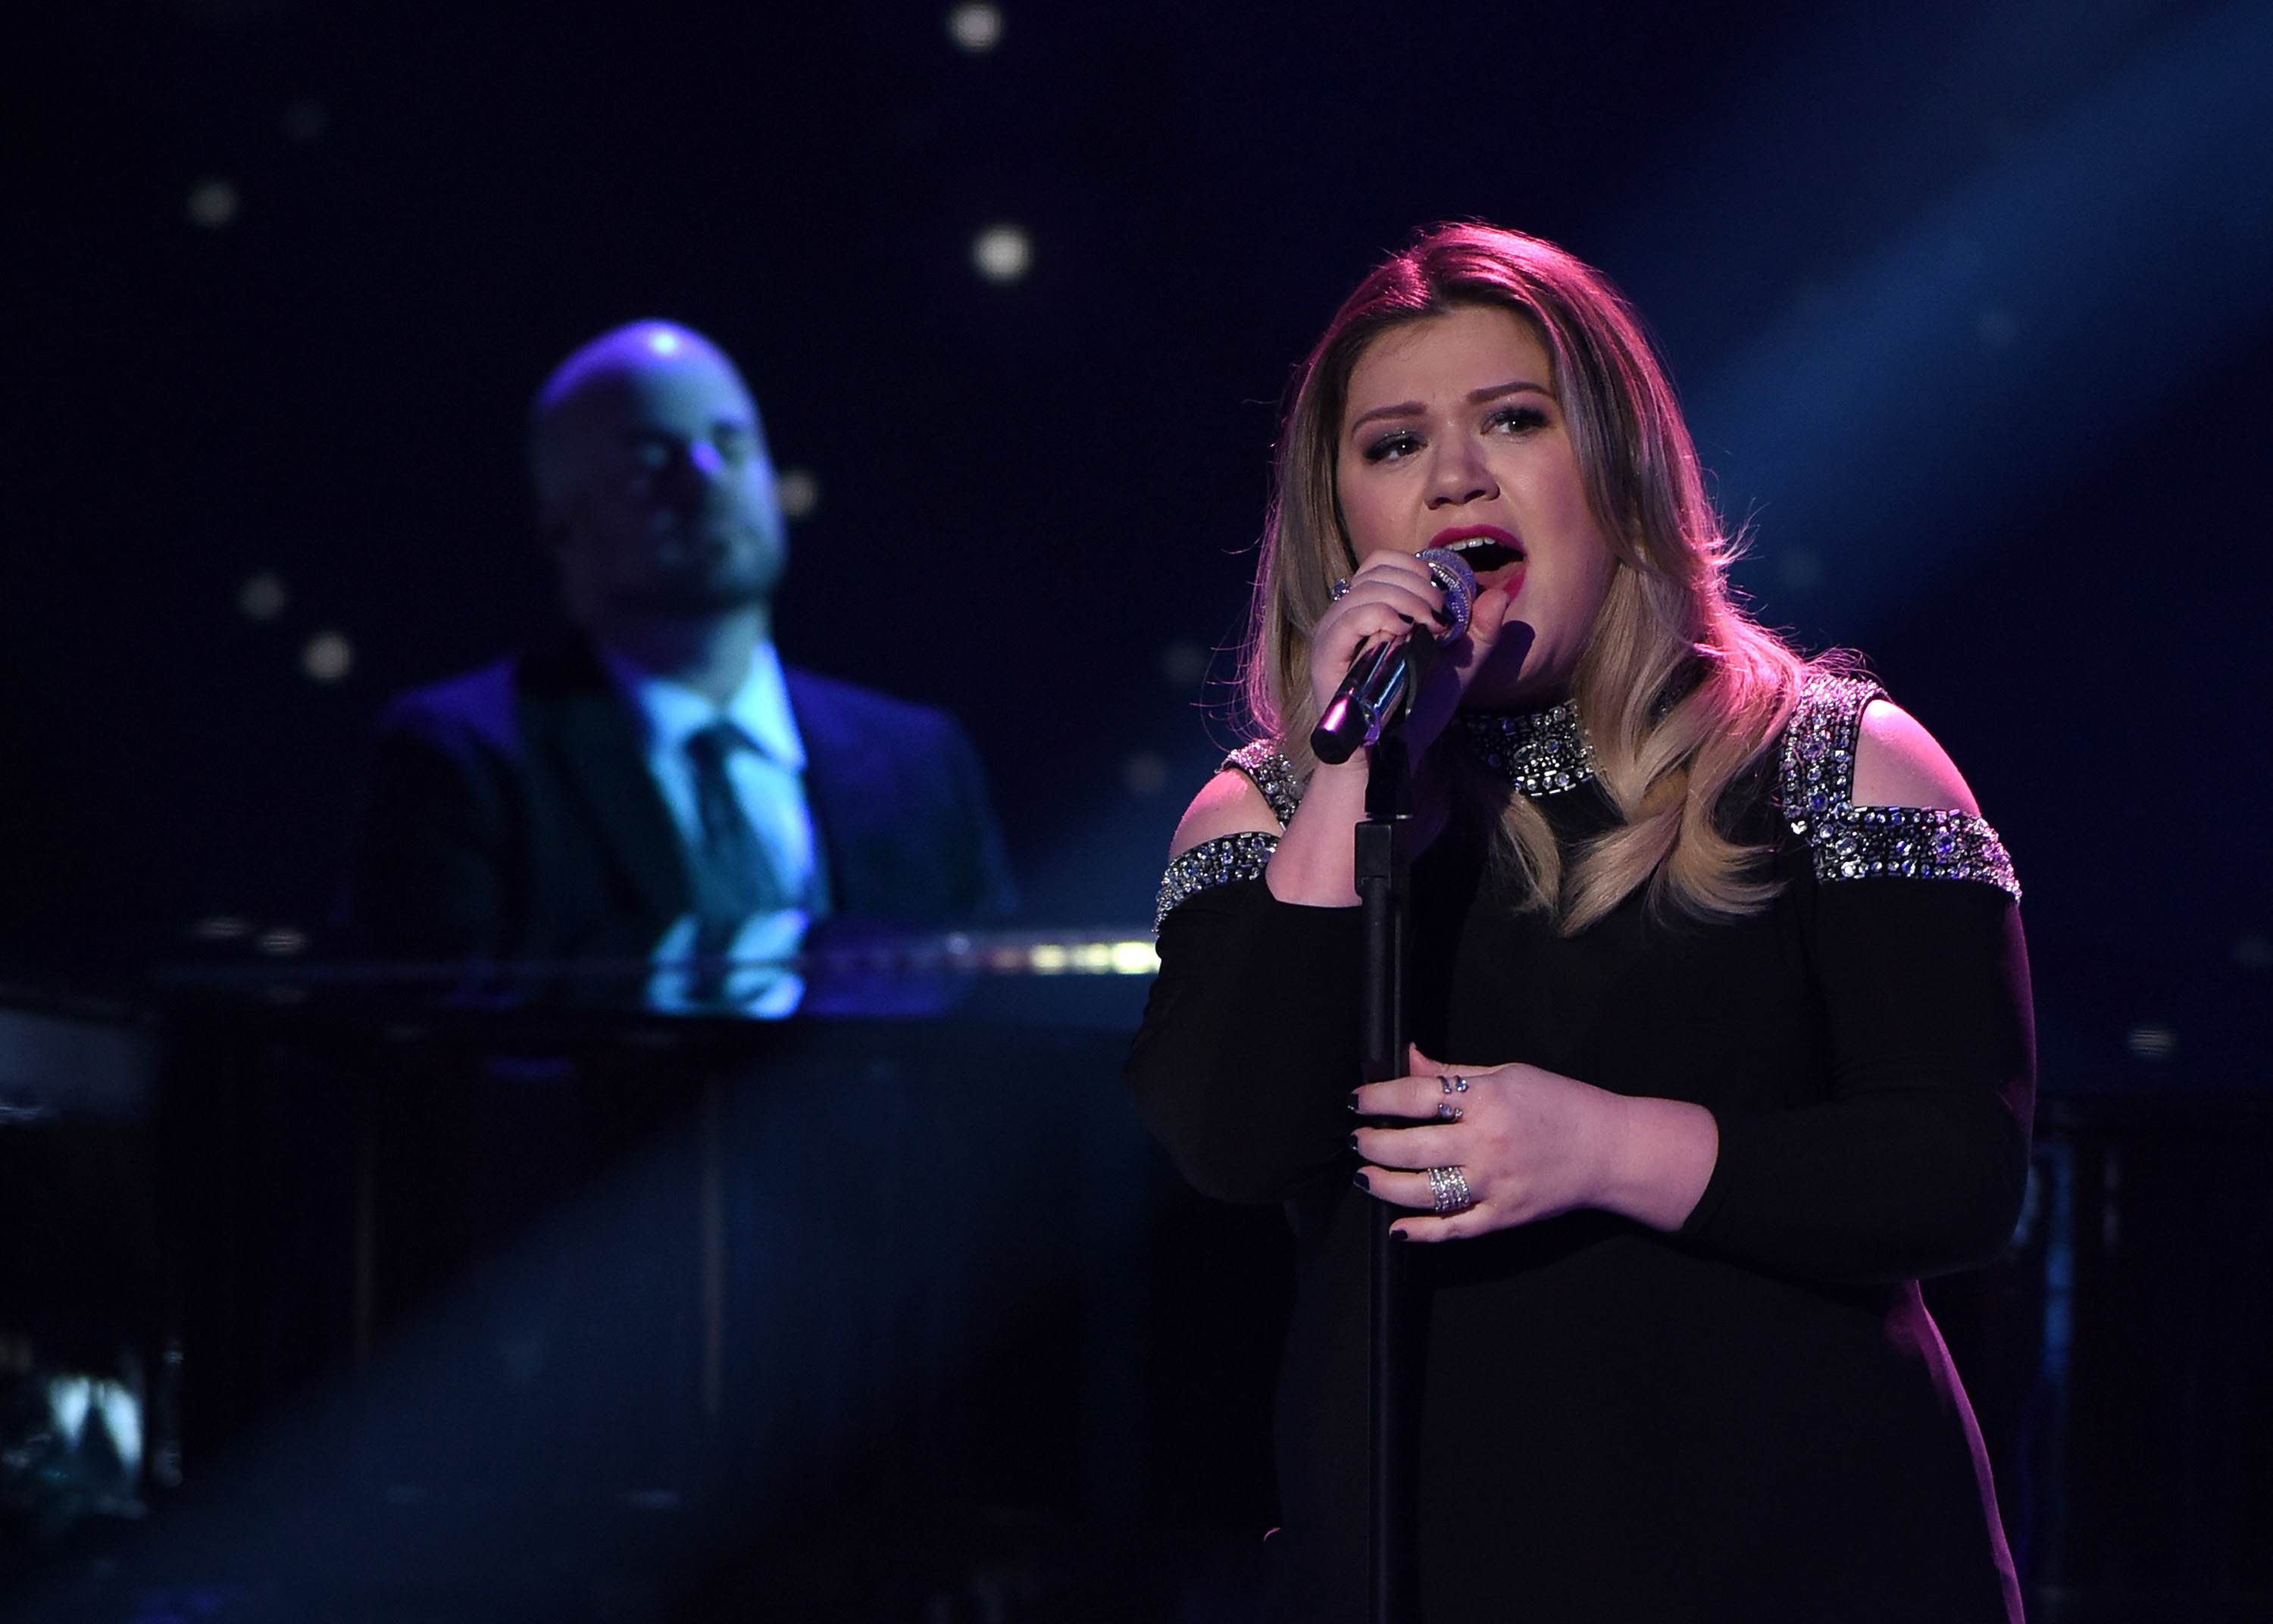 Guest judge and Season 1 winner Kelly Clarkson performs onstage at FOX's American Idol Season 15 on February 25, 2016 in Hollywood, California.